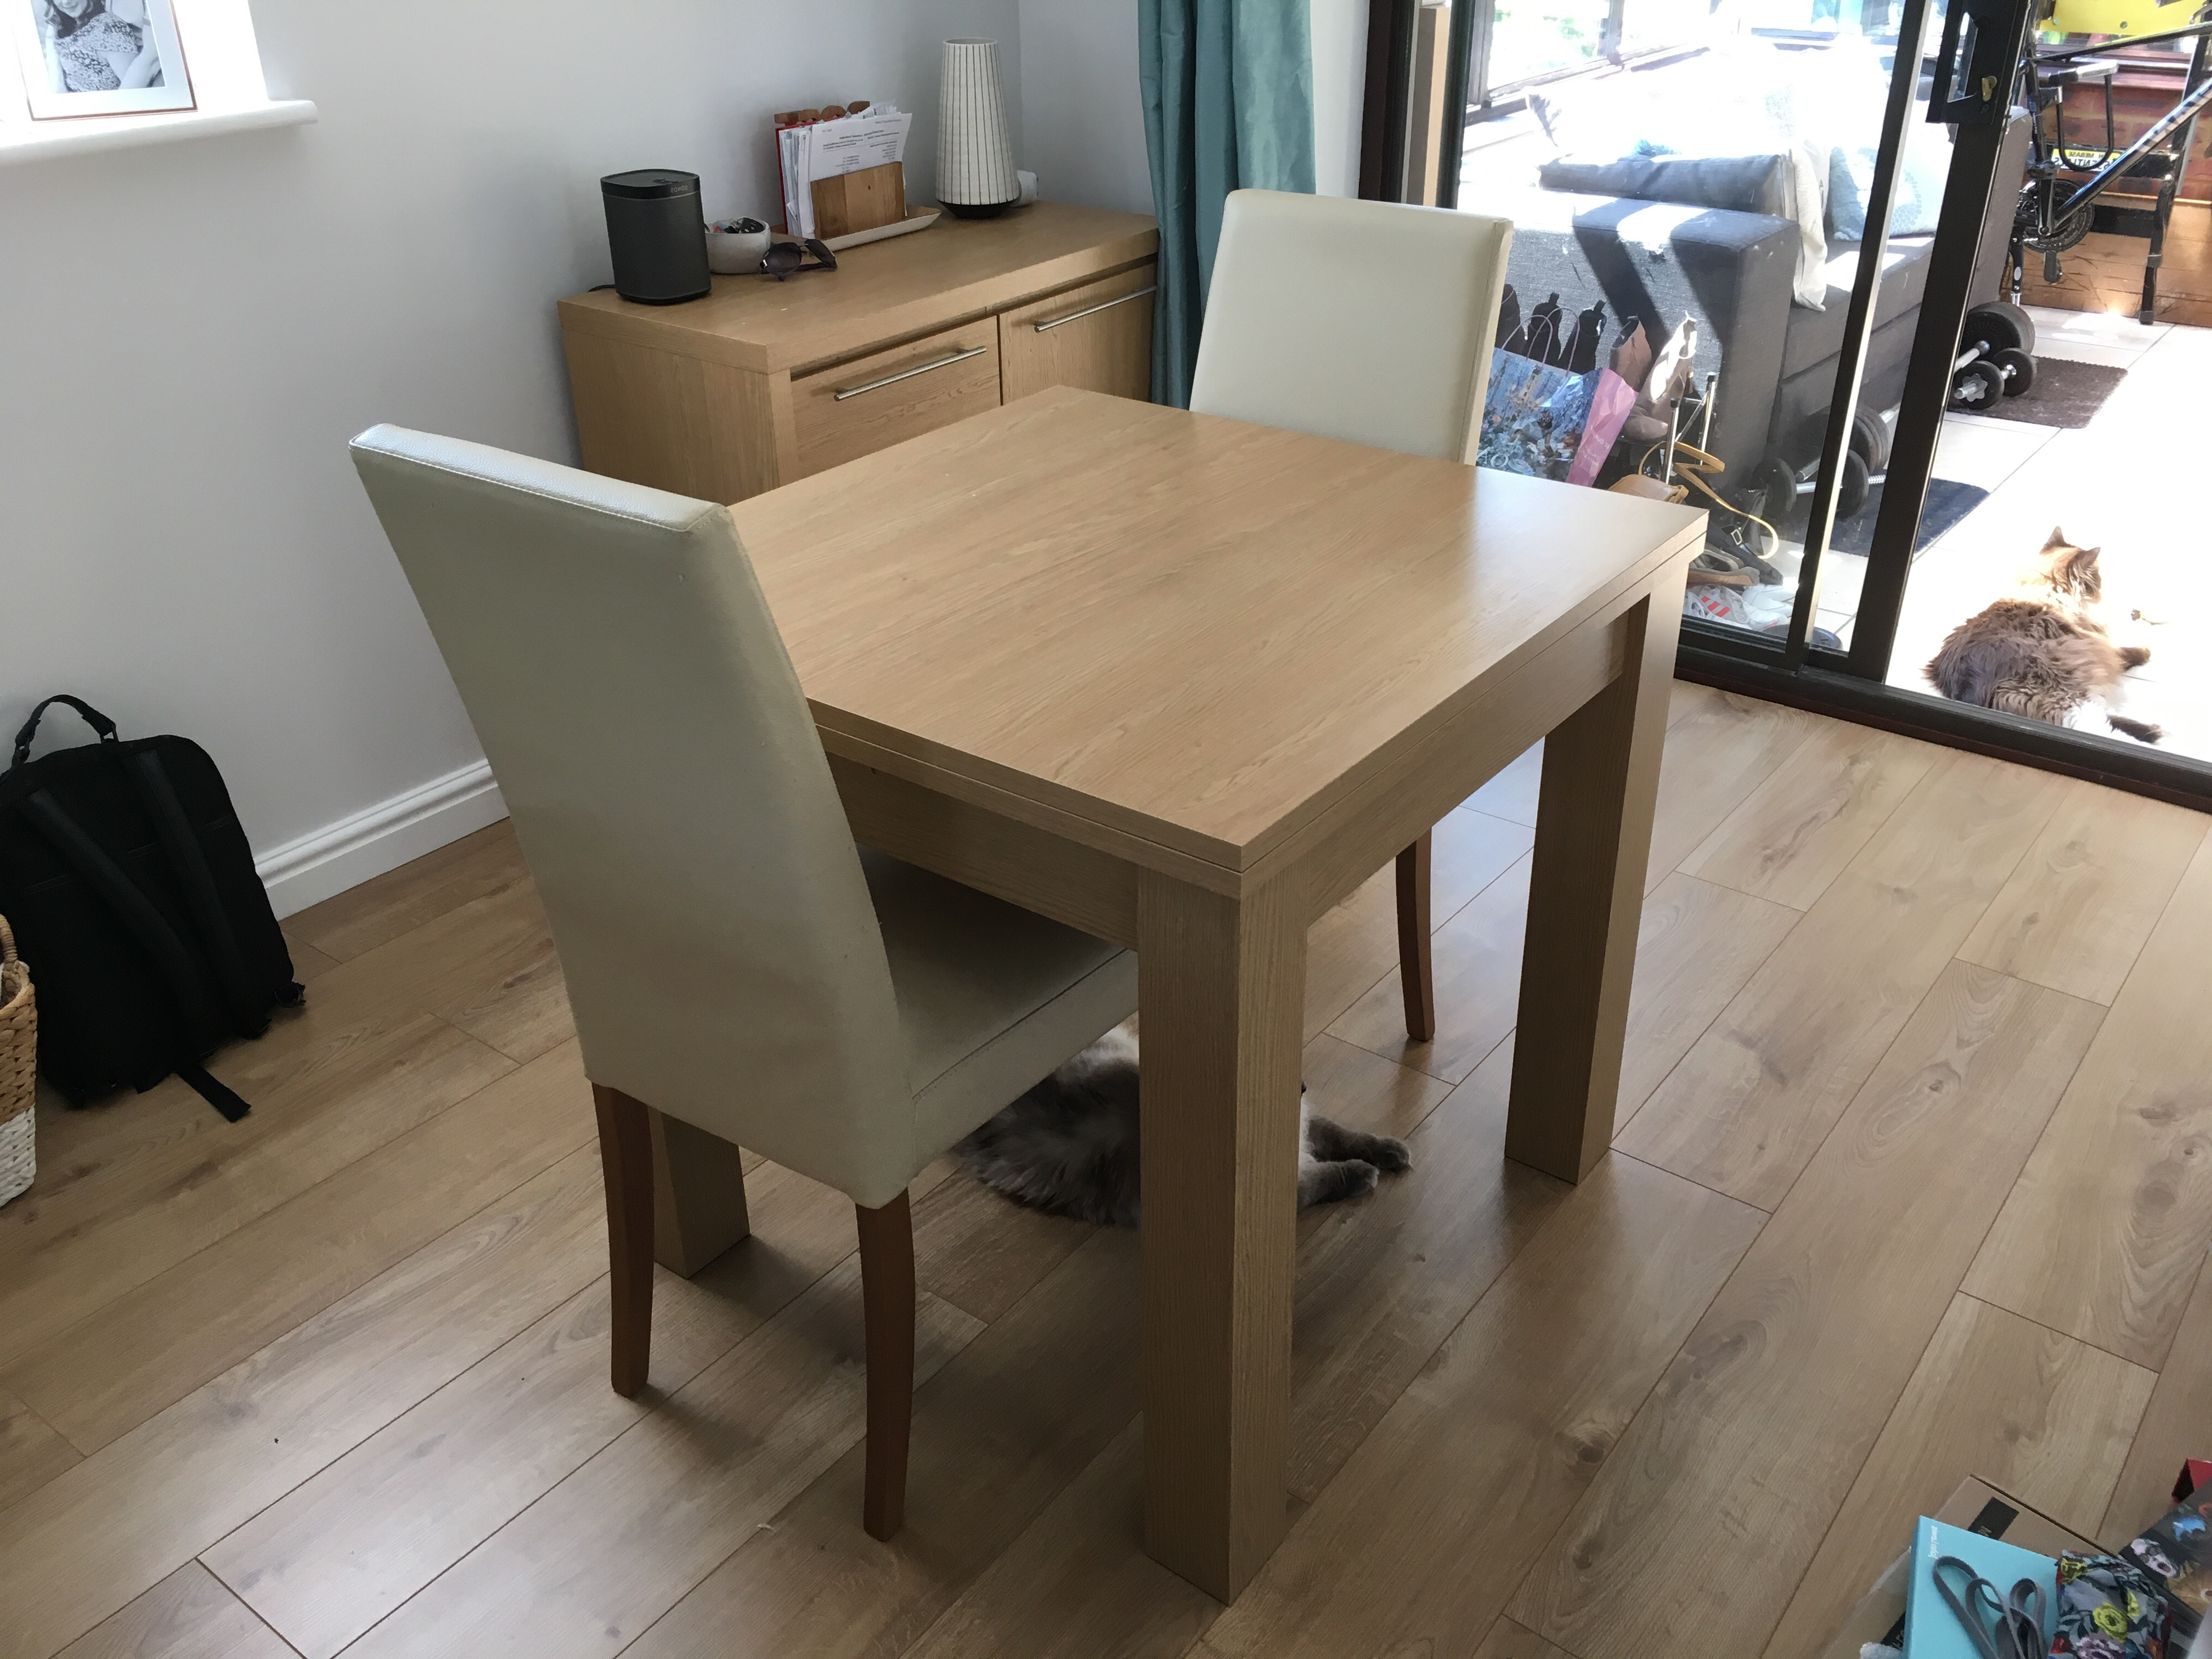 Famous John 4 Piece Dining Sets Regarding New Dining Furniture From John Lewis' Alba Range (Review) (View 7 of 25)